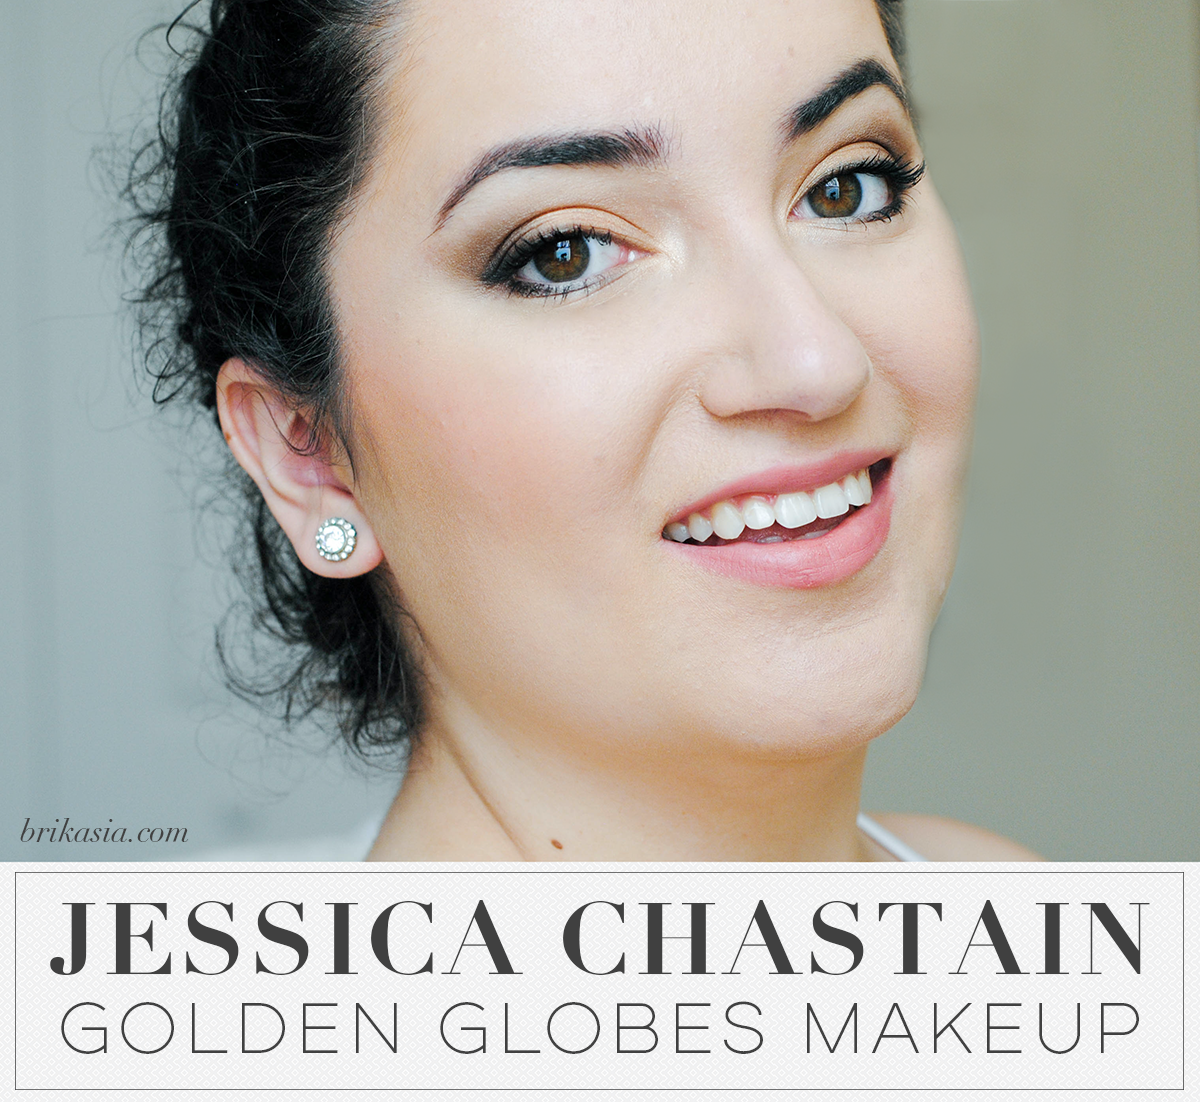 Jessica Chastain Golden Globes Makeup